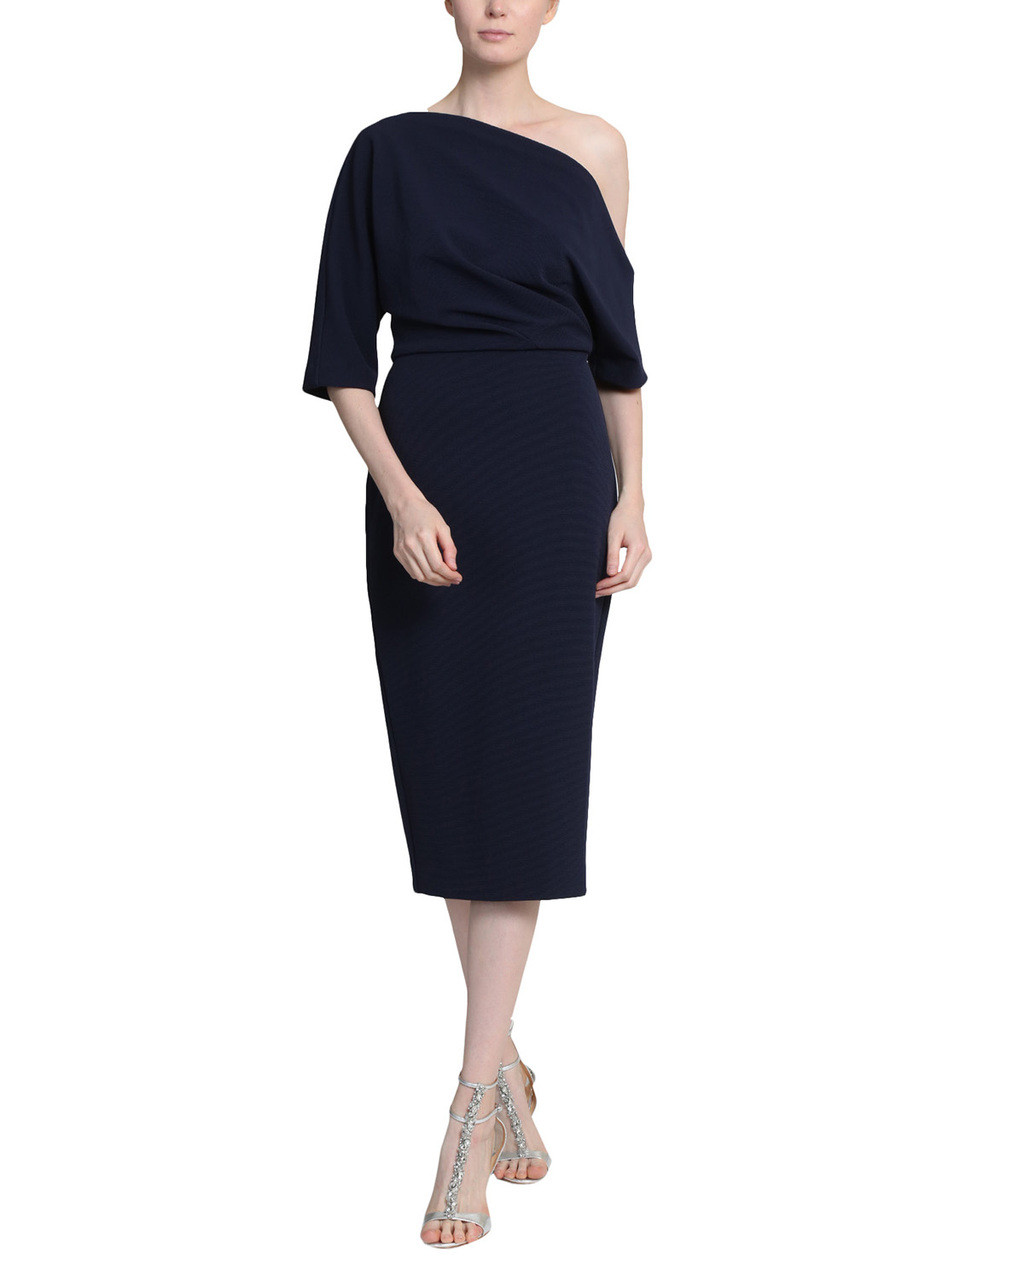 f10554d06b8c Navy One Shoulder Three Quarter Length Sleeves Cocktail Dress